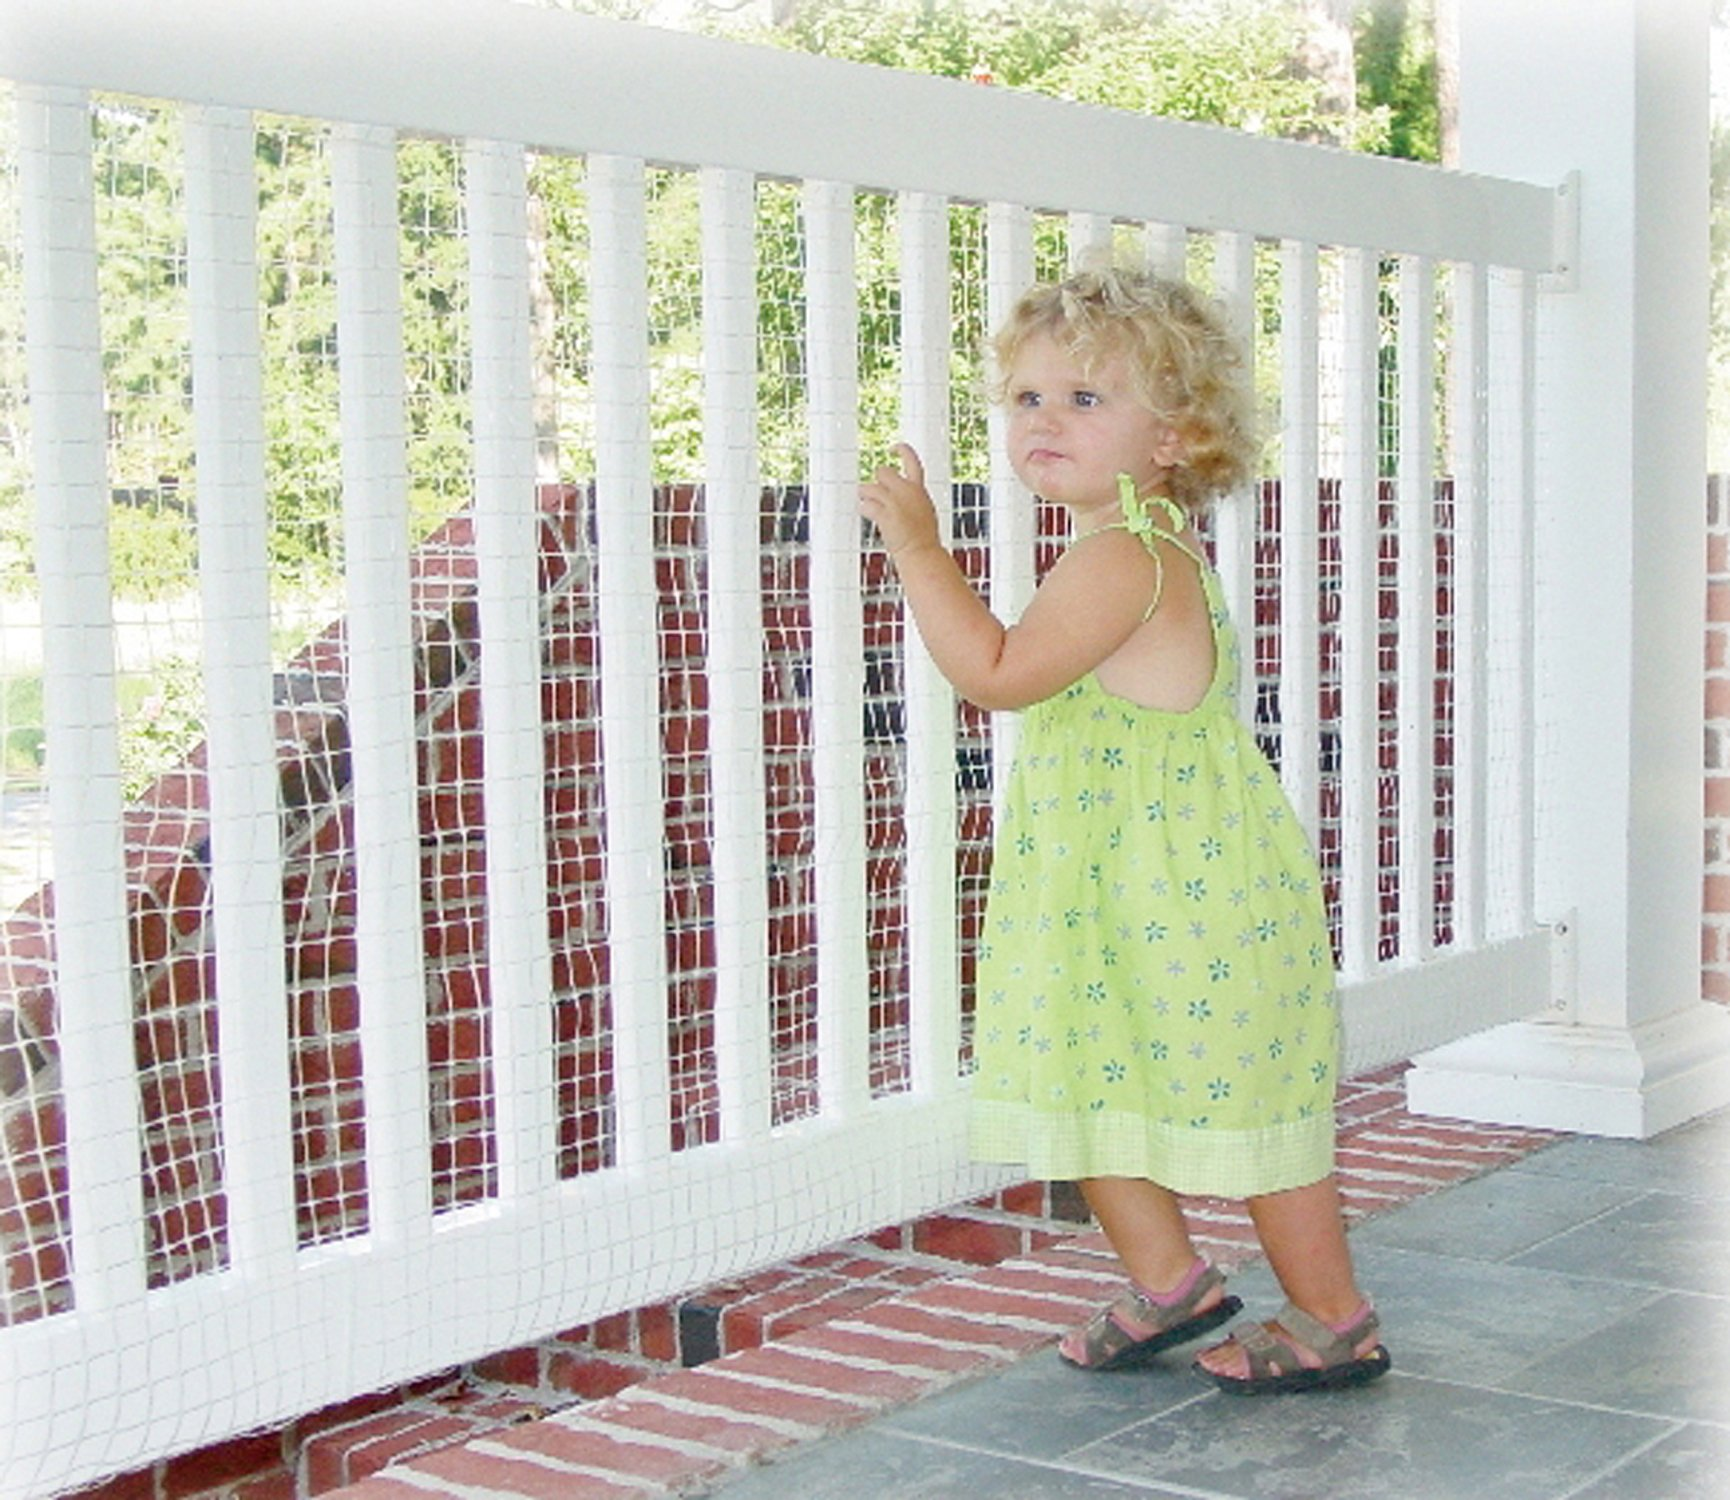 Kidkusion Inc. Deck Guard 10' L x 33'' H Outdoor Balcony and Stairway Deck Rail Safety Net, Clear